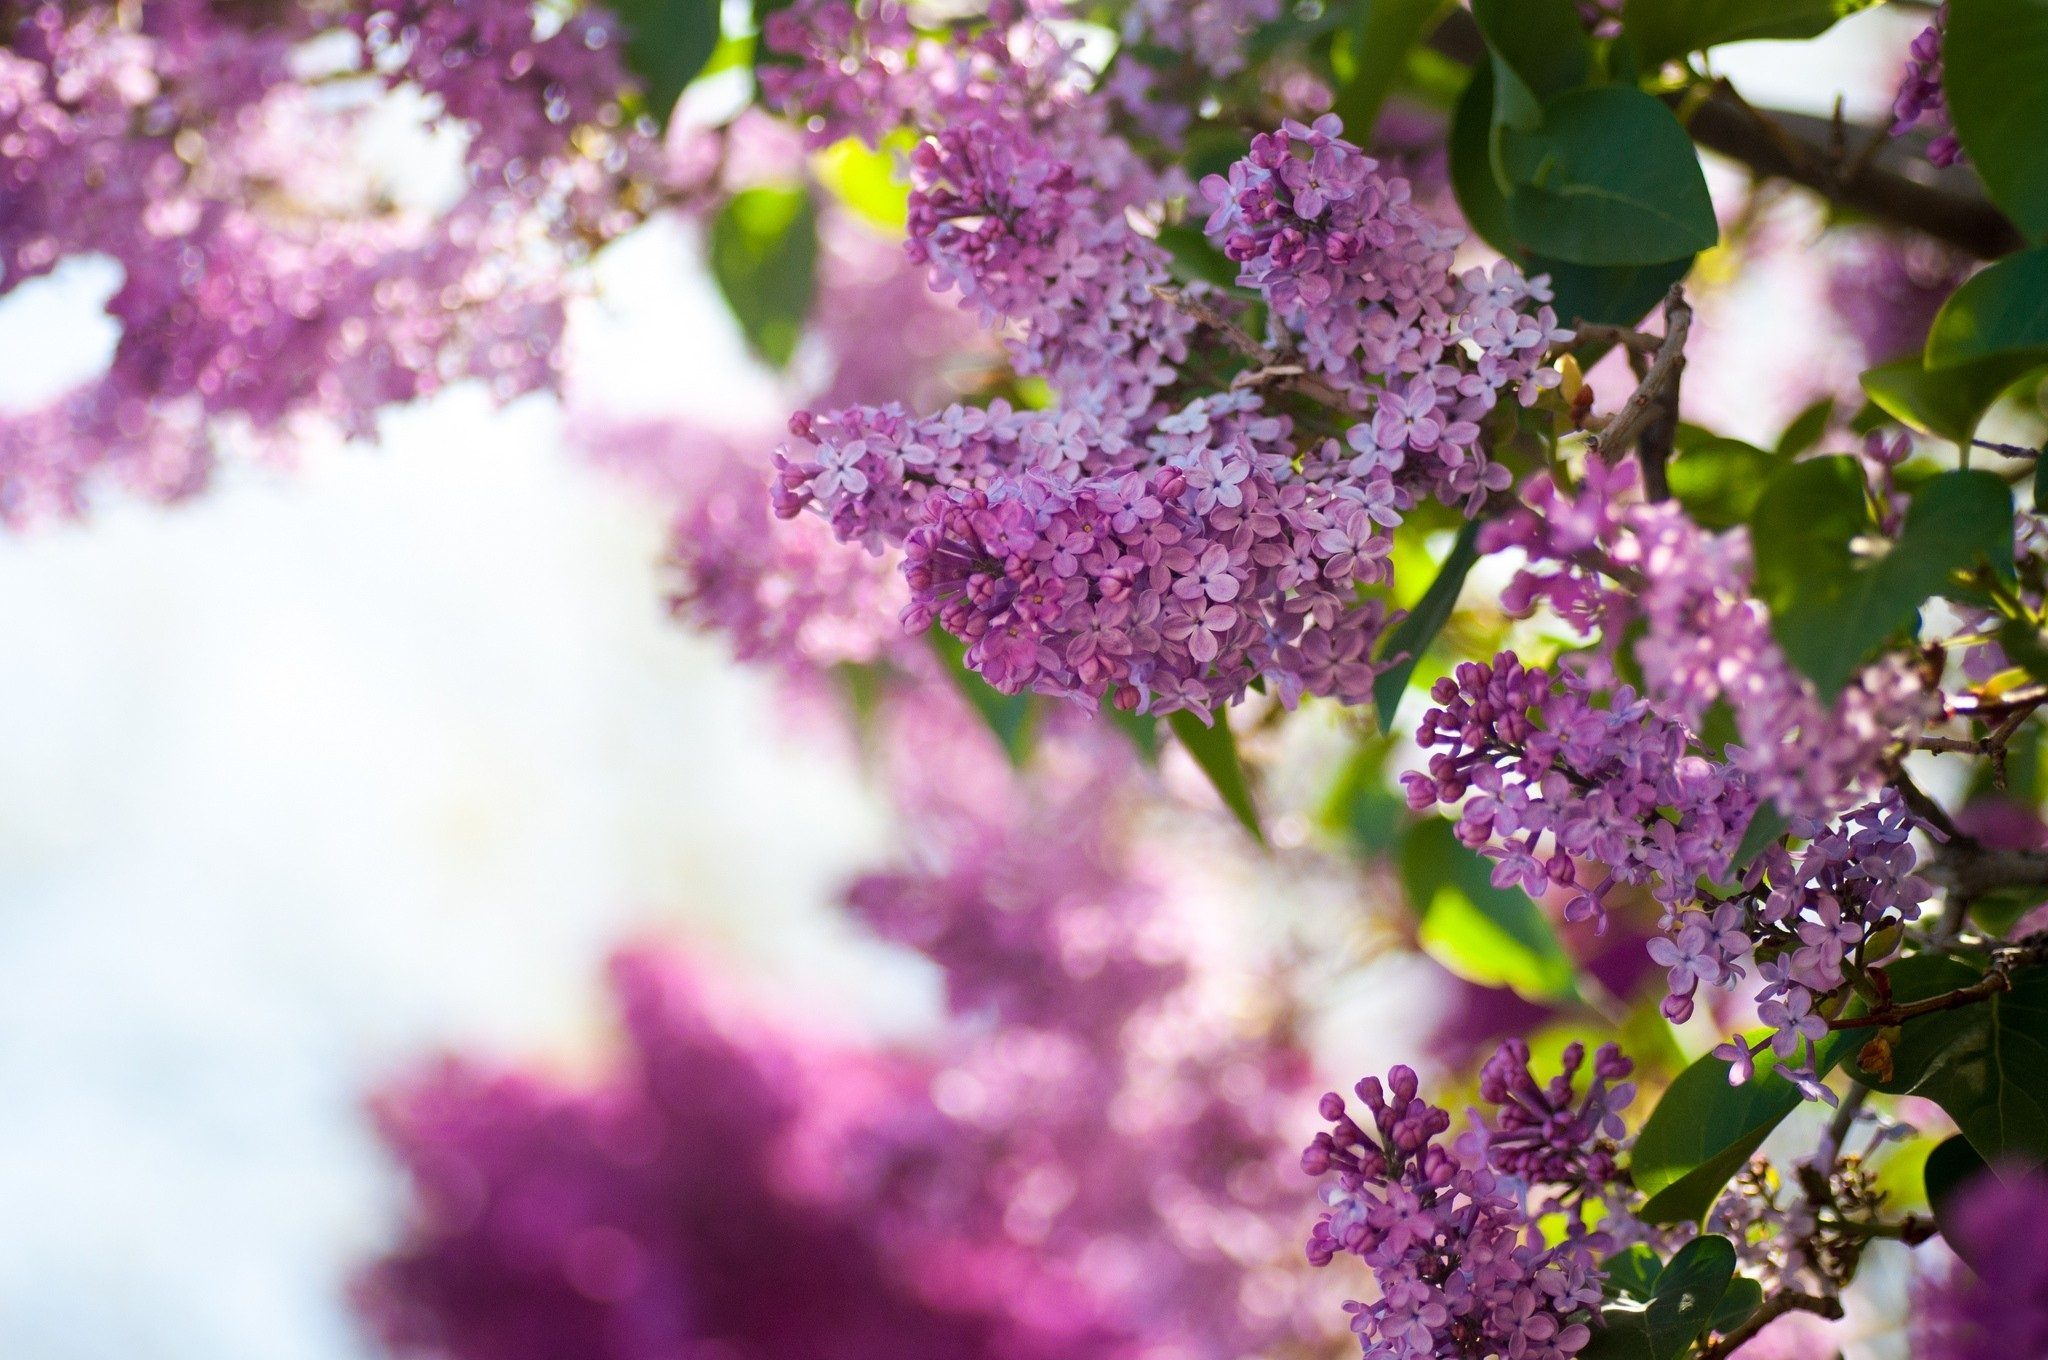 lilac flower purple photo 34733577 fanpop